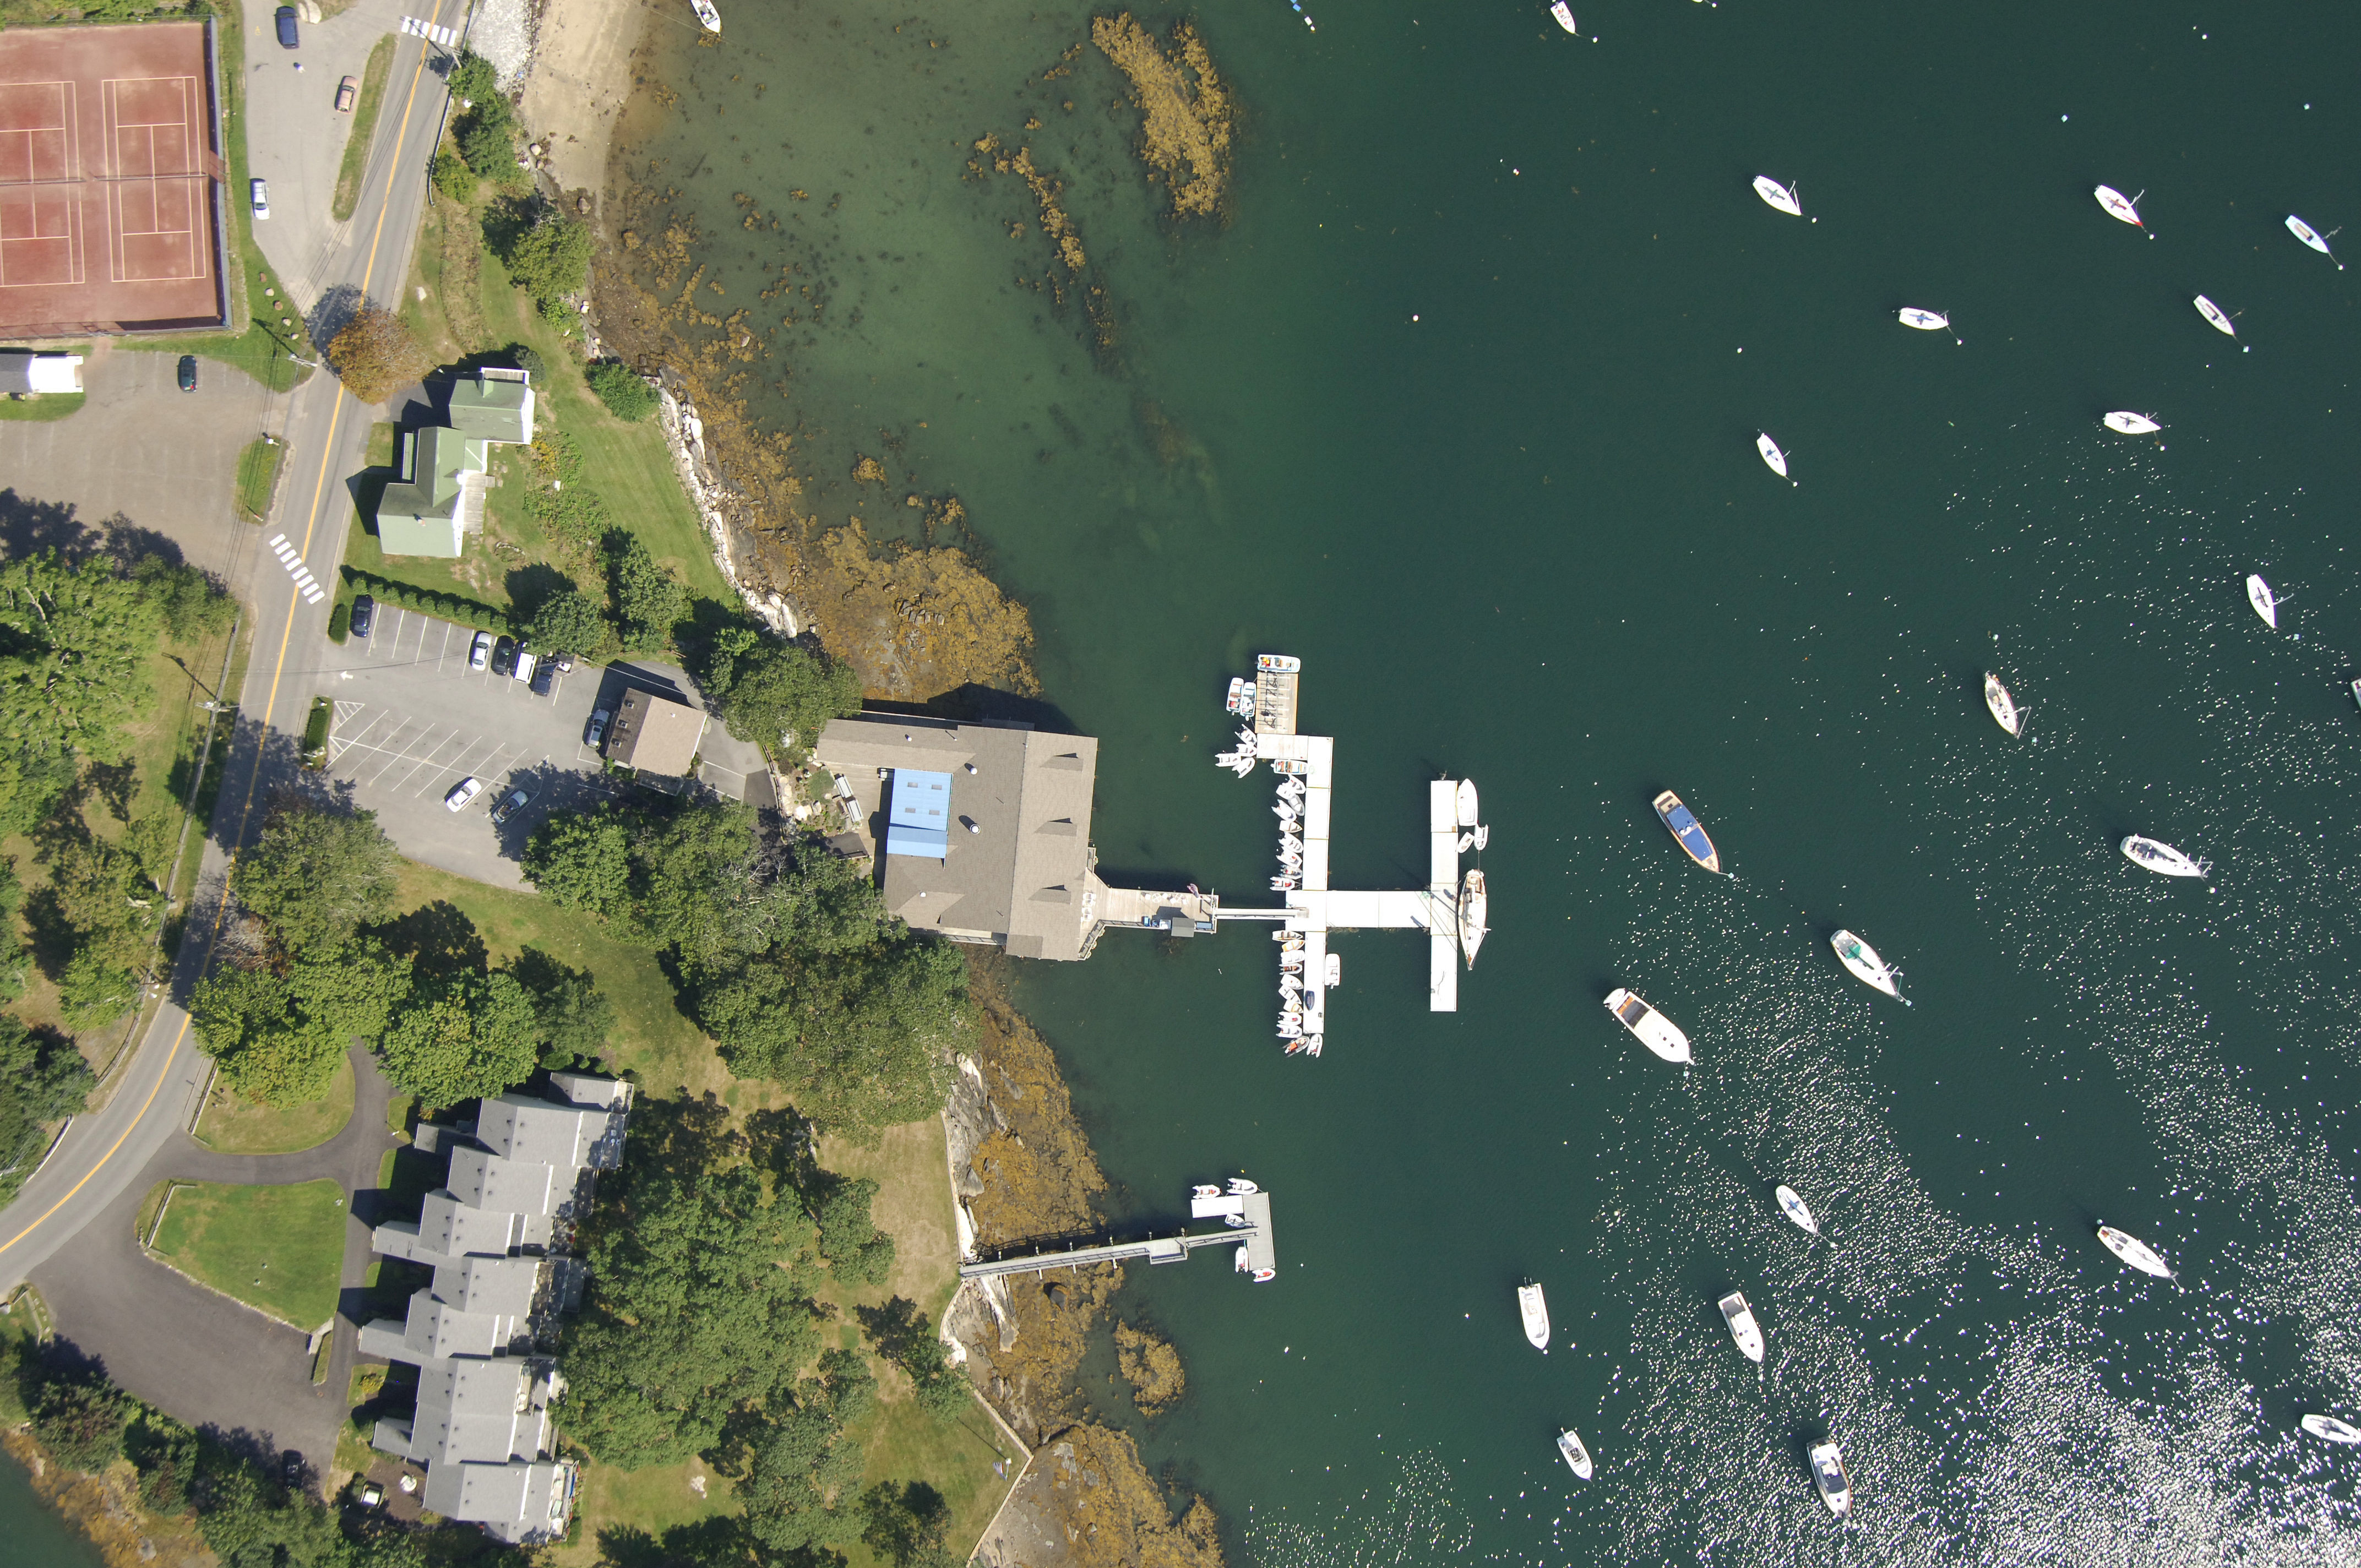 west boothbay harbor dating Boothbay harbor's event calendar provides plenty of options for the summer  area events book  celebrating an oyster culture dating back to 200.